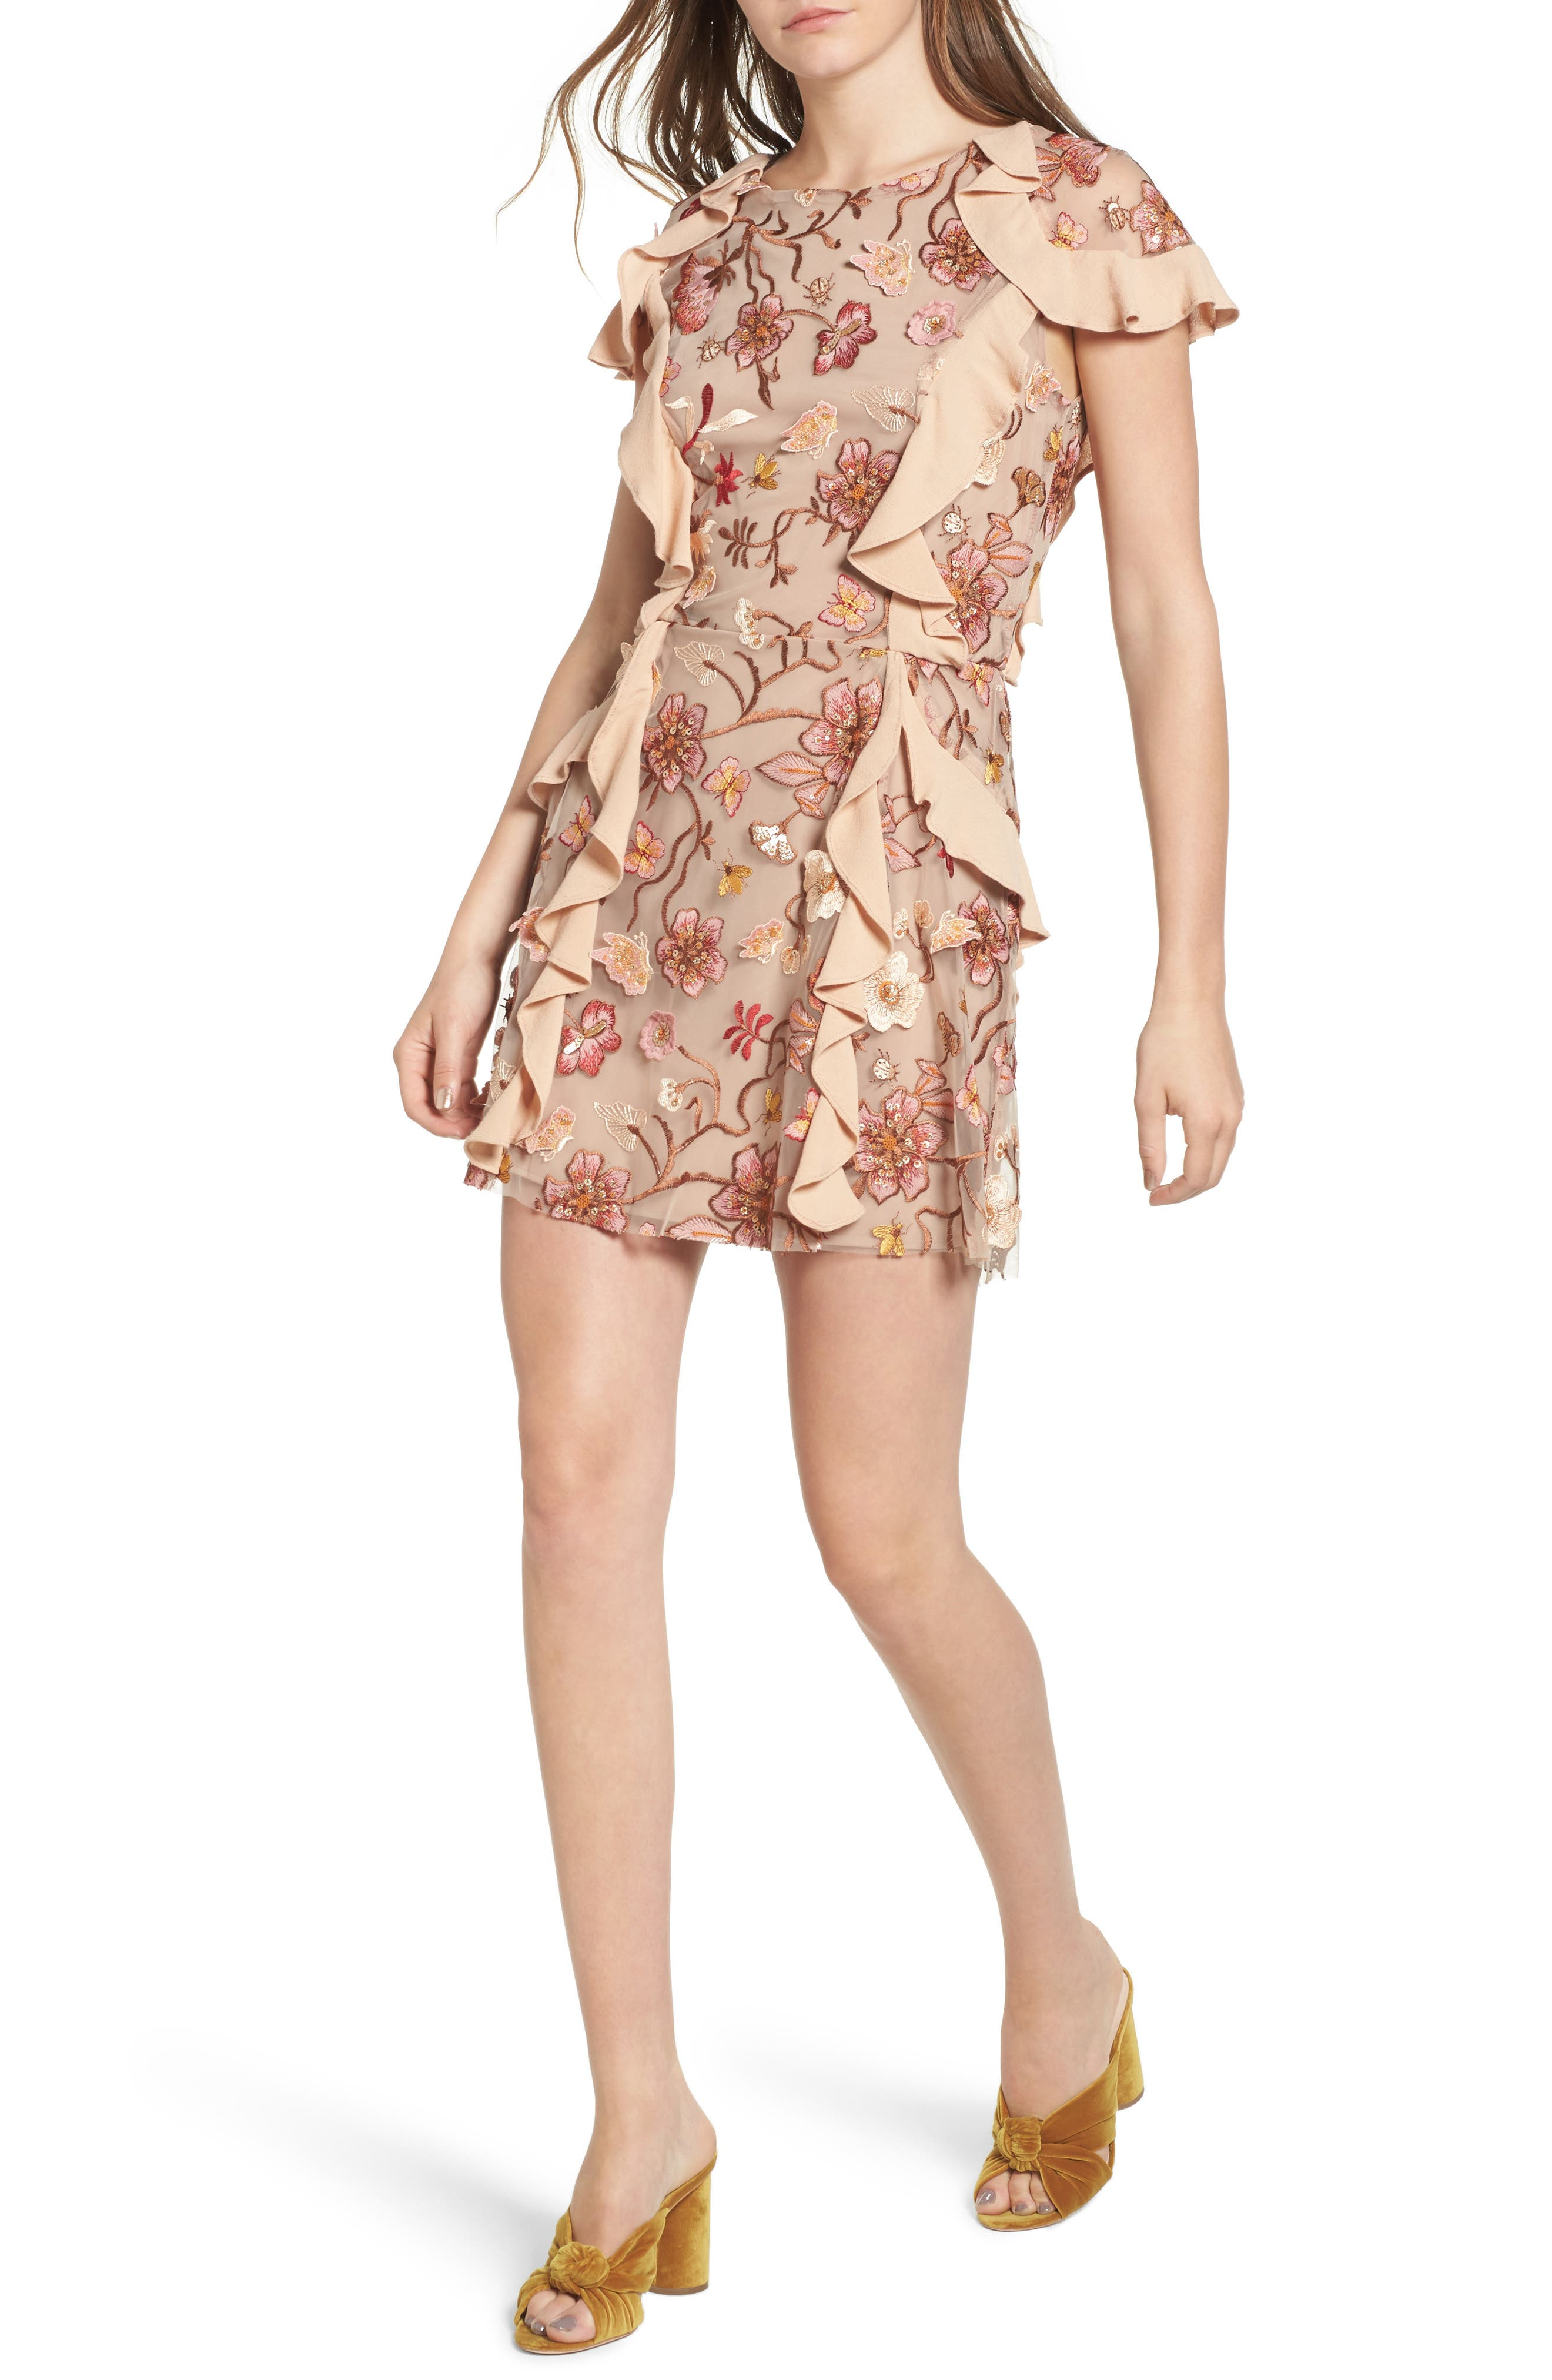 Botanical Embroidered Ruffle Minidress,                             Main thumbnail 1, color,                             Nude Floral